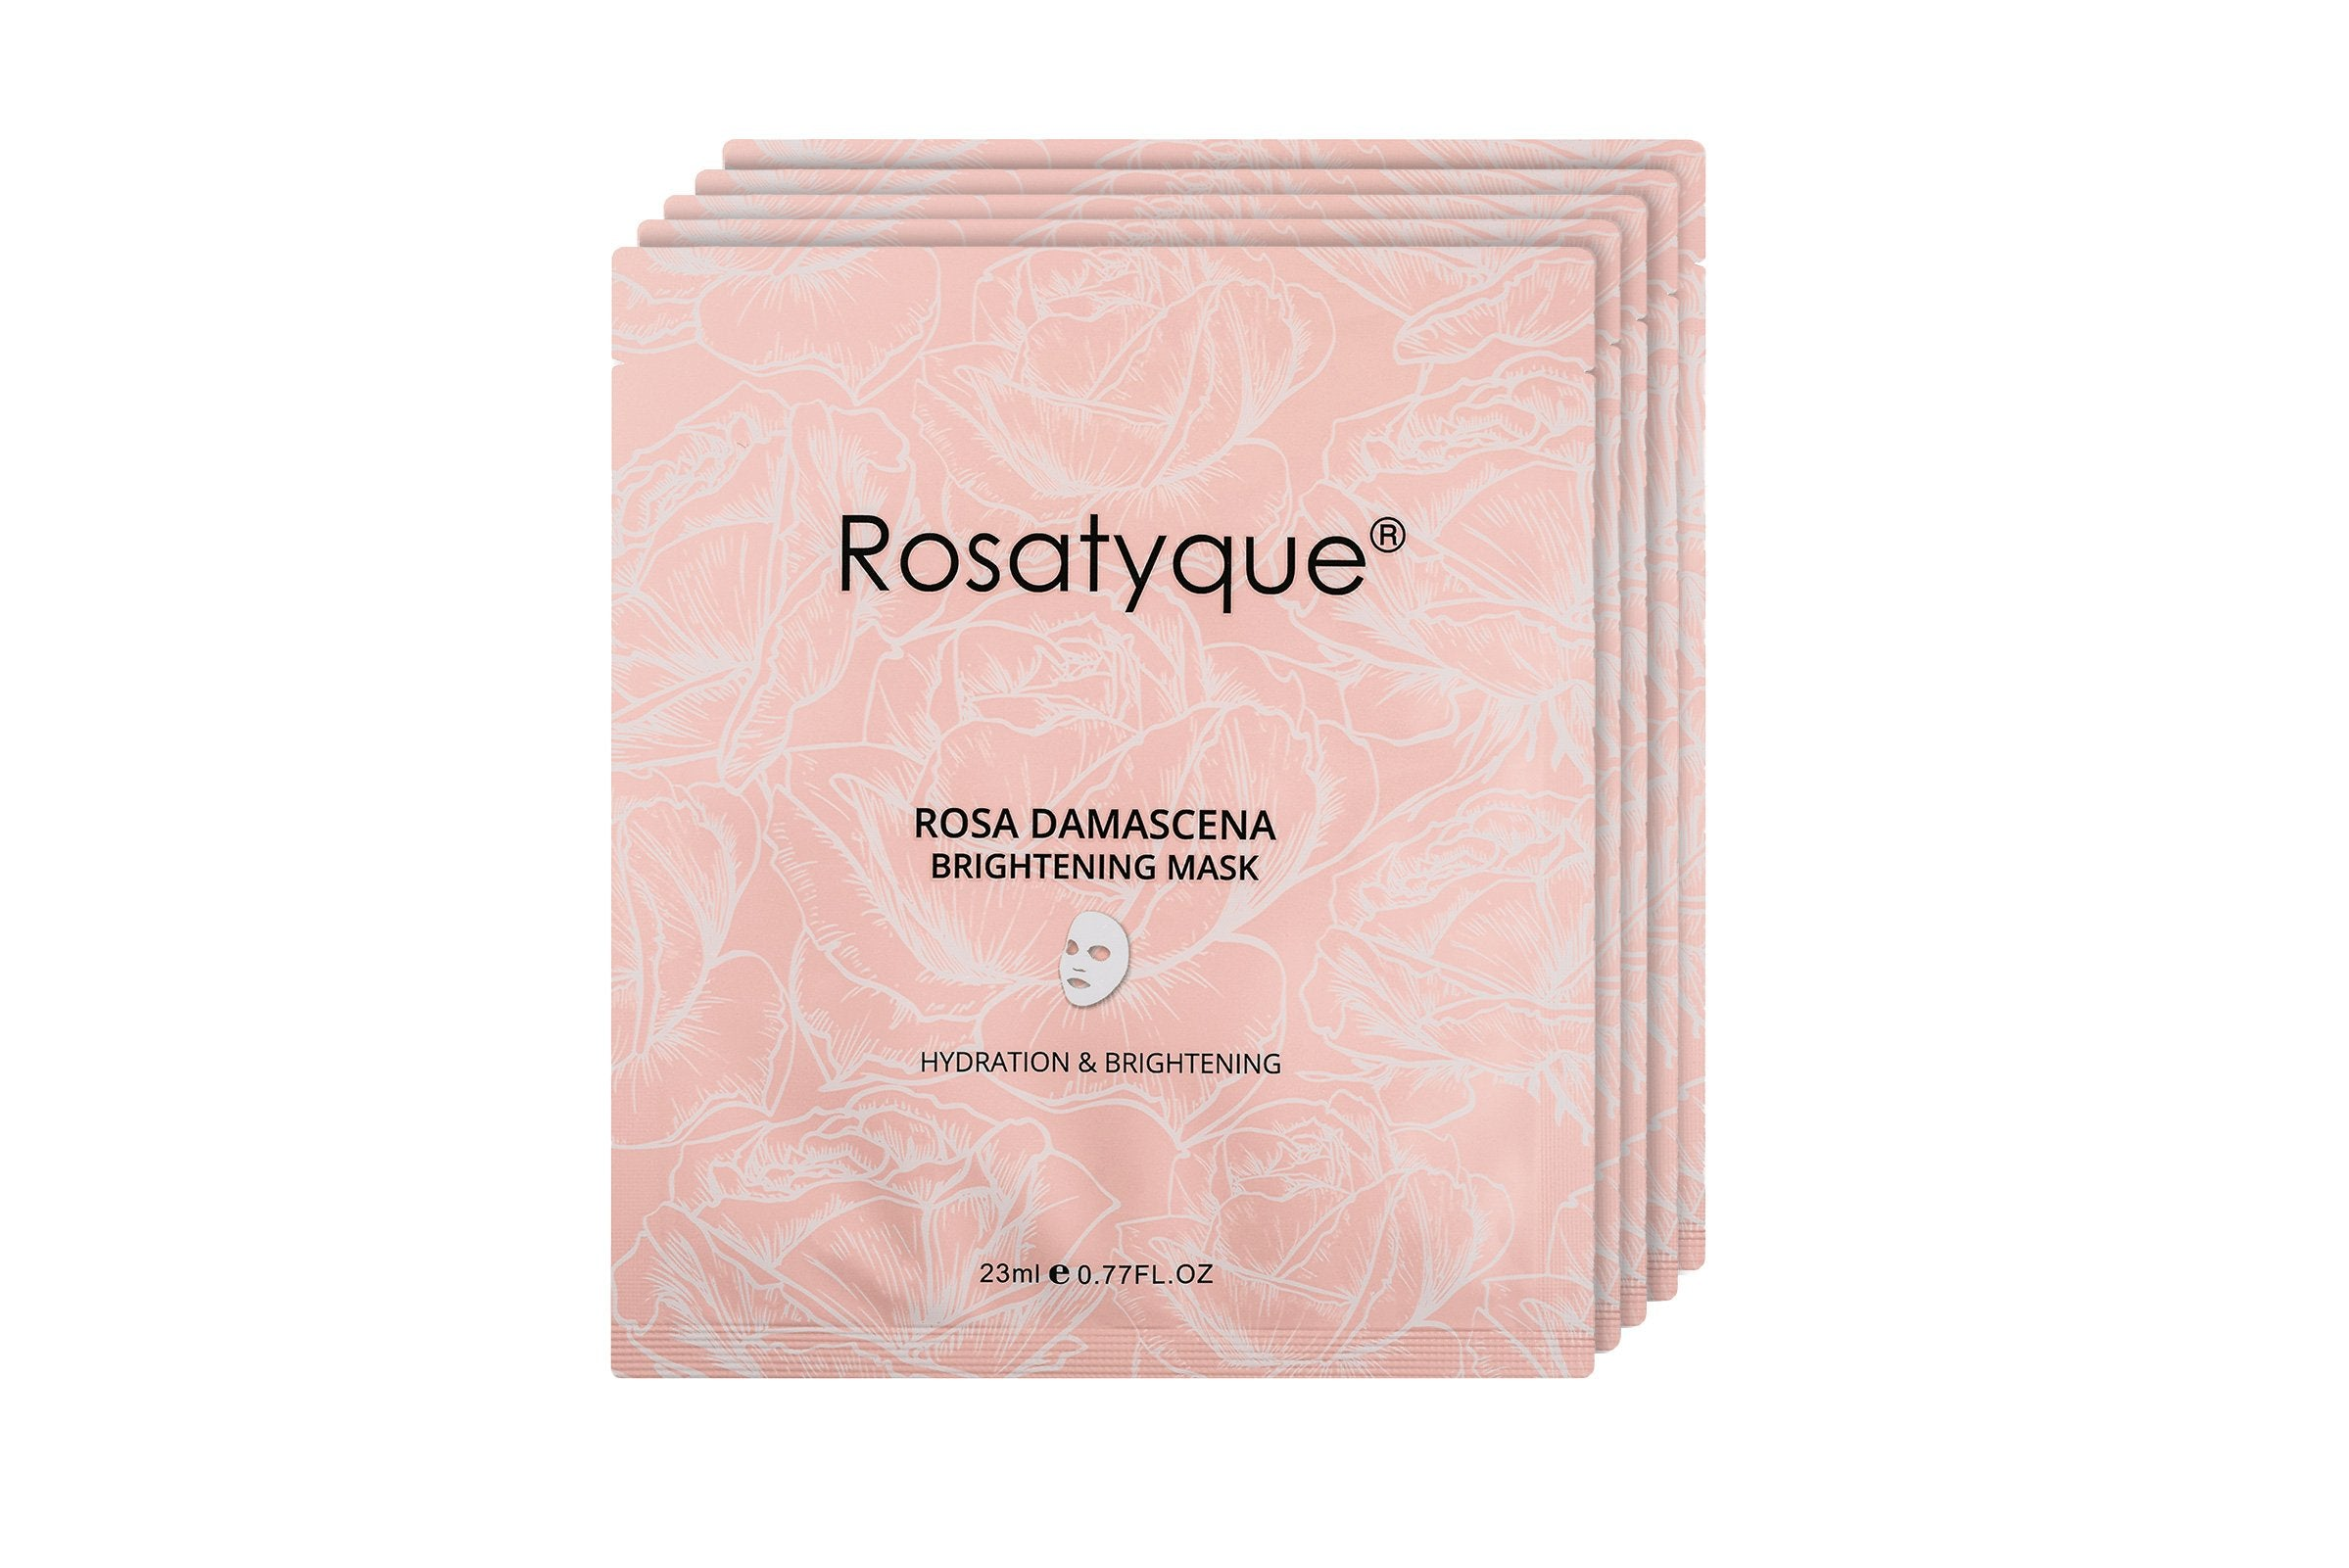 Rosa Damascena Brightening Mask Box 5pcs - Rosatyque